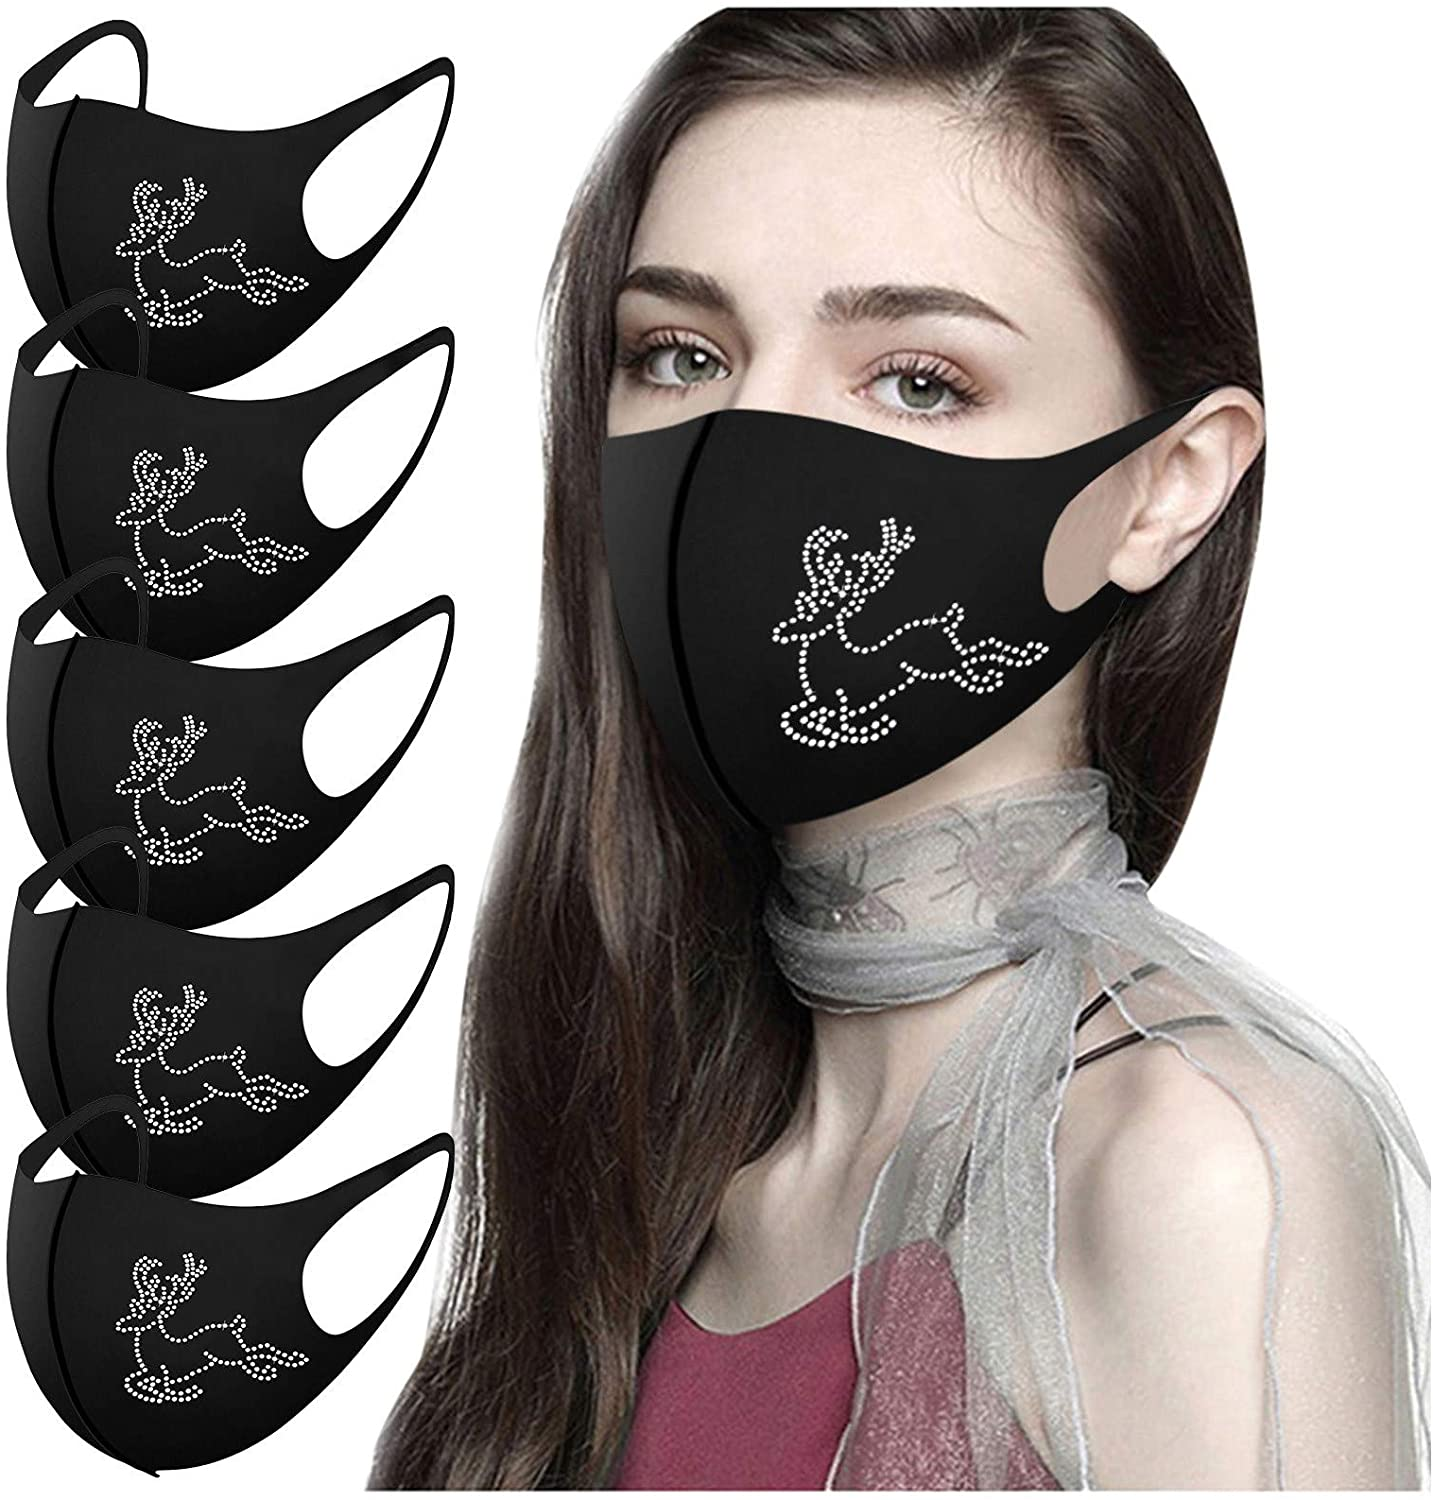 Gerichy Bling Rhinestone Facemask for Adults Christmas, Adult Face Balaclava Reusable Breathable Fashion Cloth Face_Mask